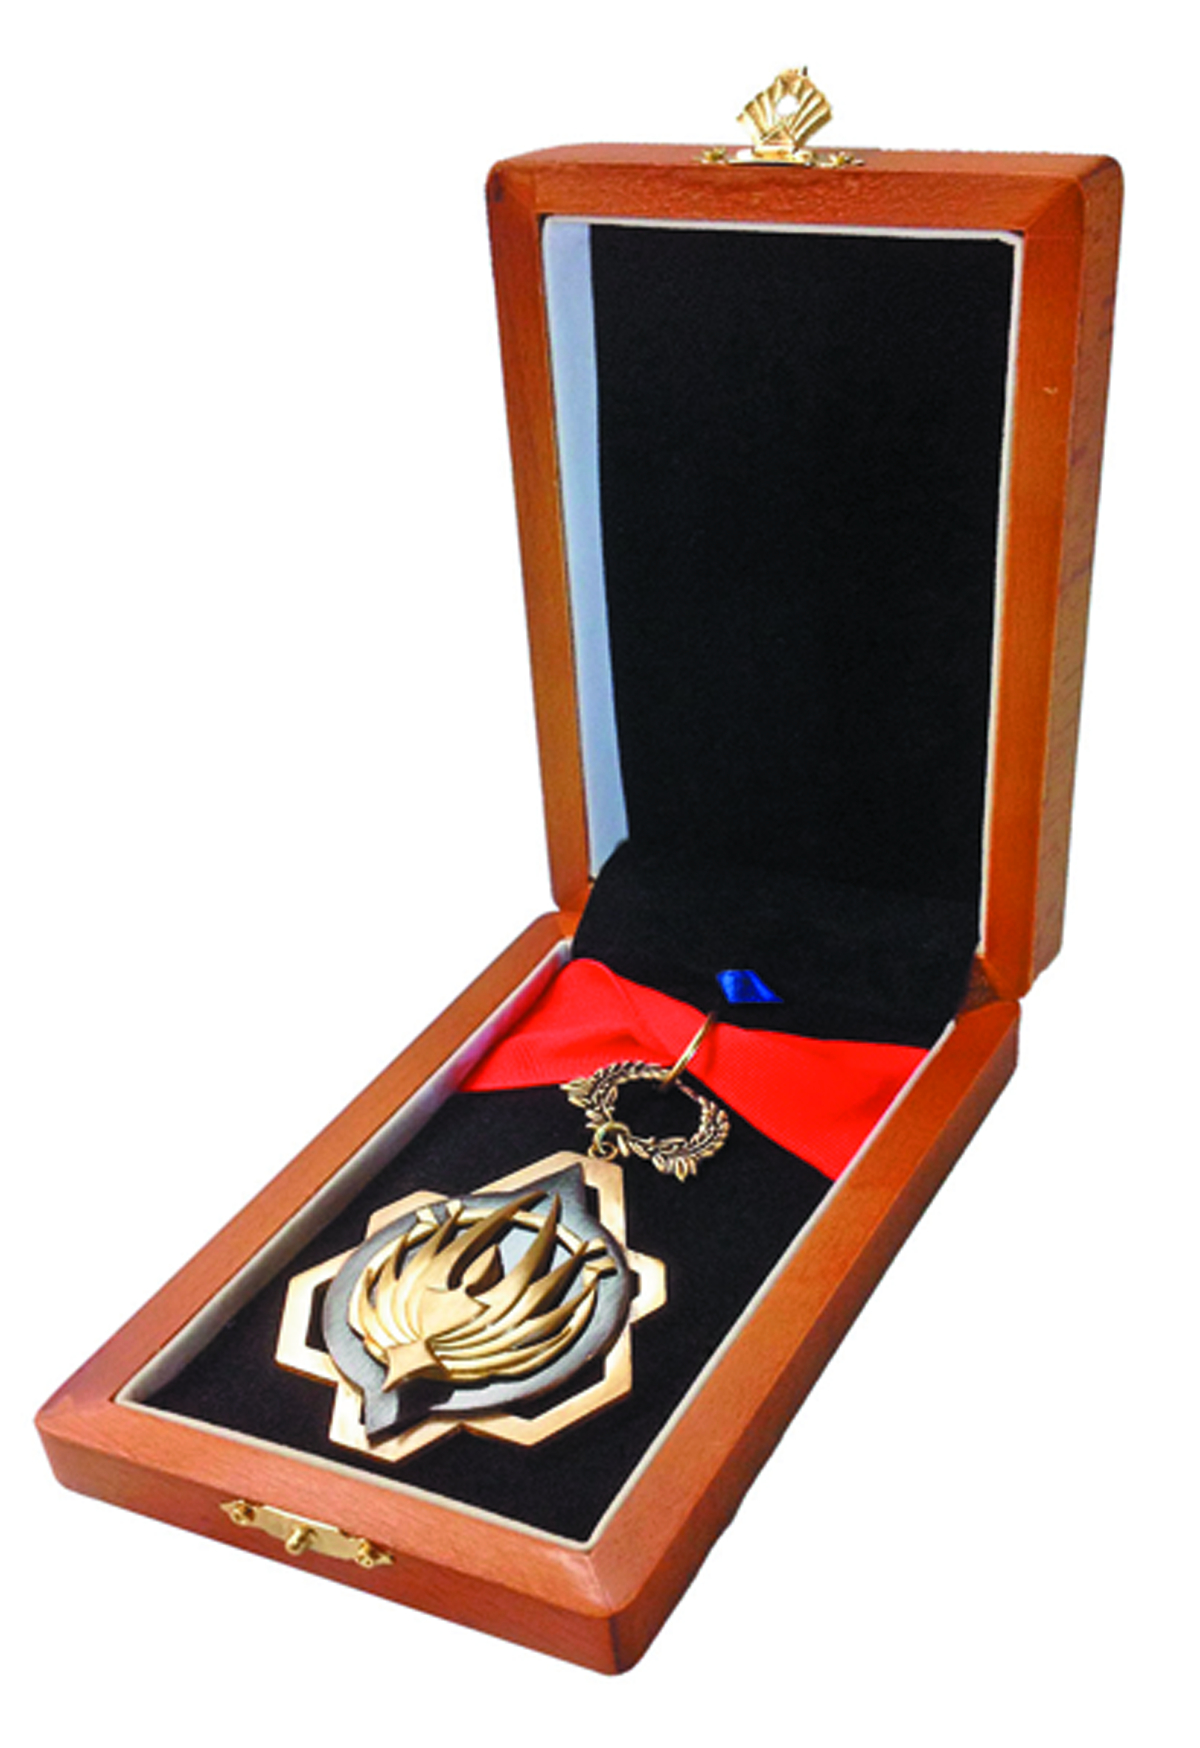 BSG MEDAL OF DISTINCTION 1/1 SCALE PROP REPLICA